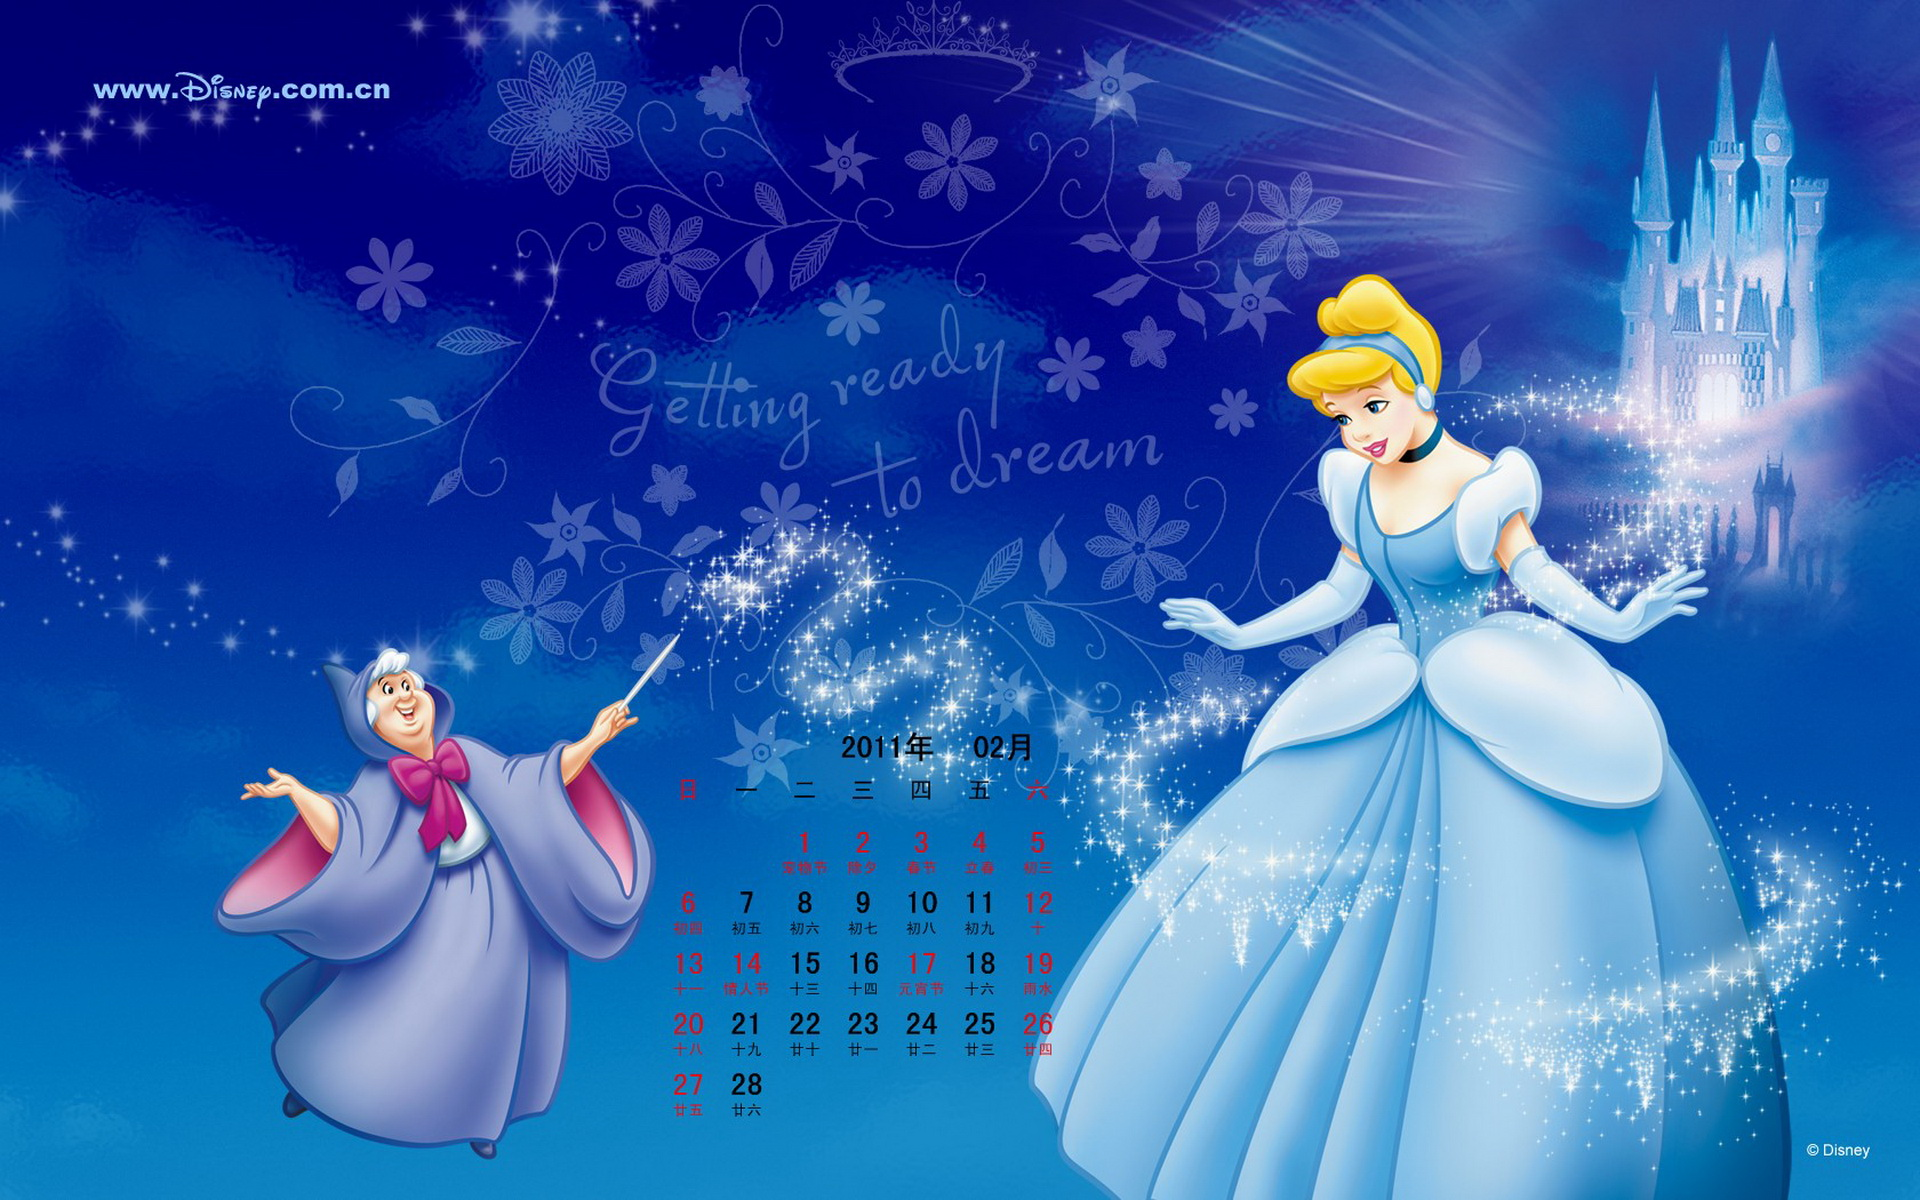 Cinderella wallpaper high quality 10077 wallpaper walldiskpaper cinderella wallpaper high quality altavistaventures Image collections